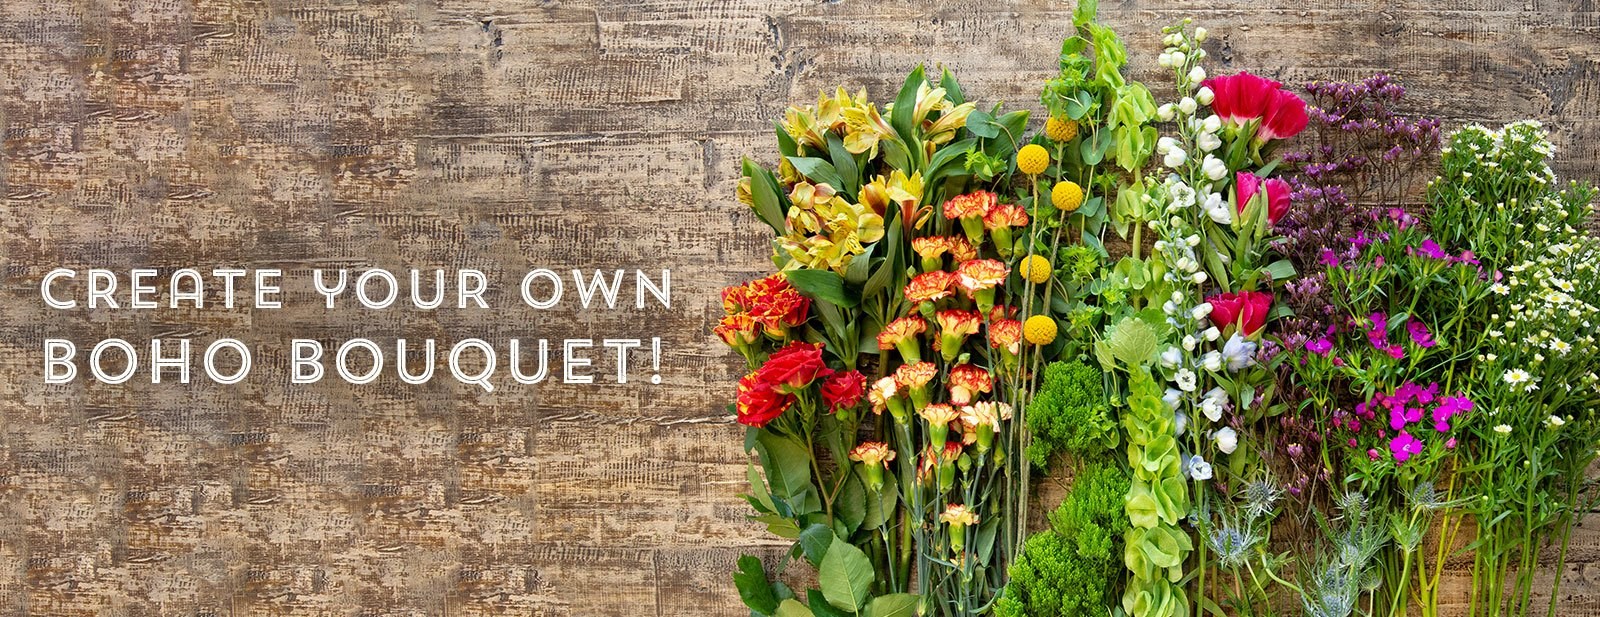 Create your own boho bouquet!